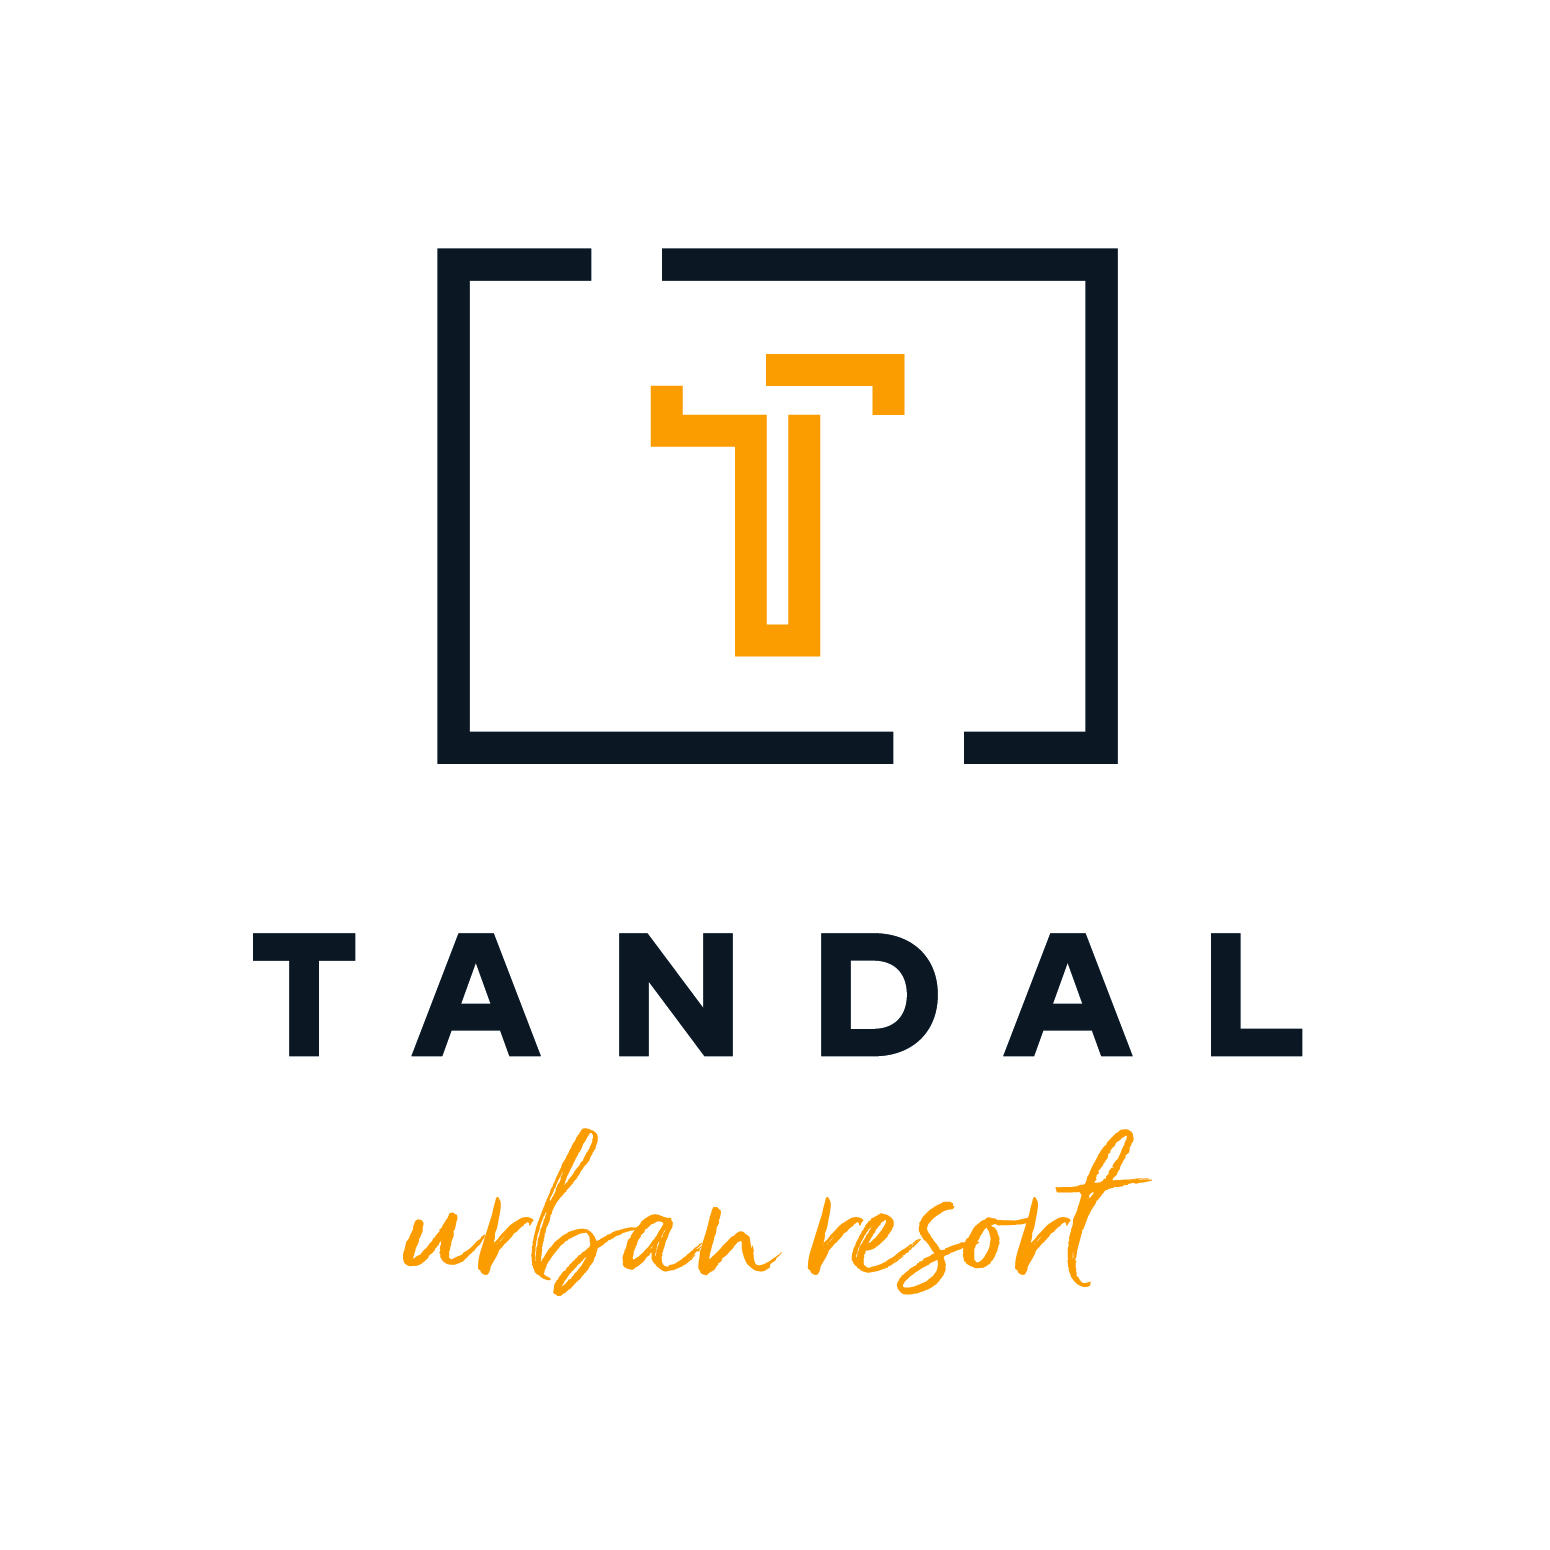 Tandal Urban Resort